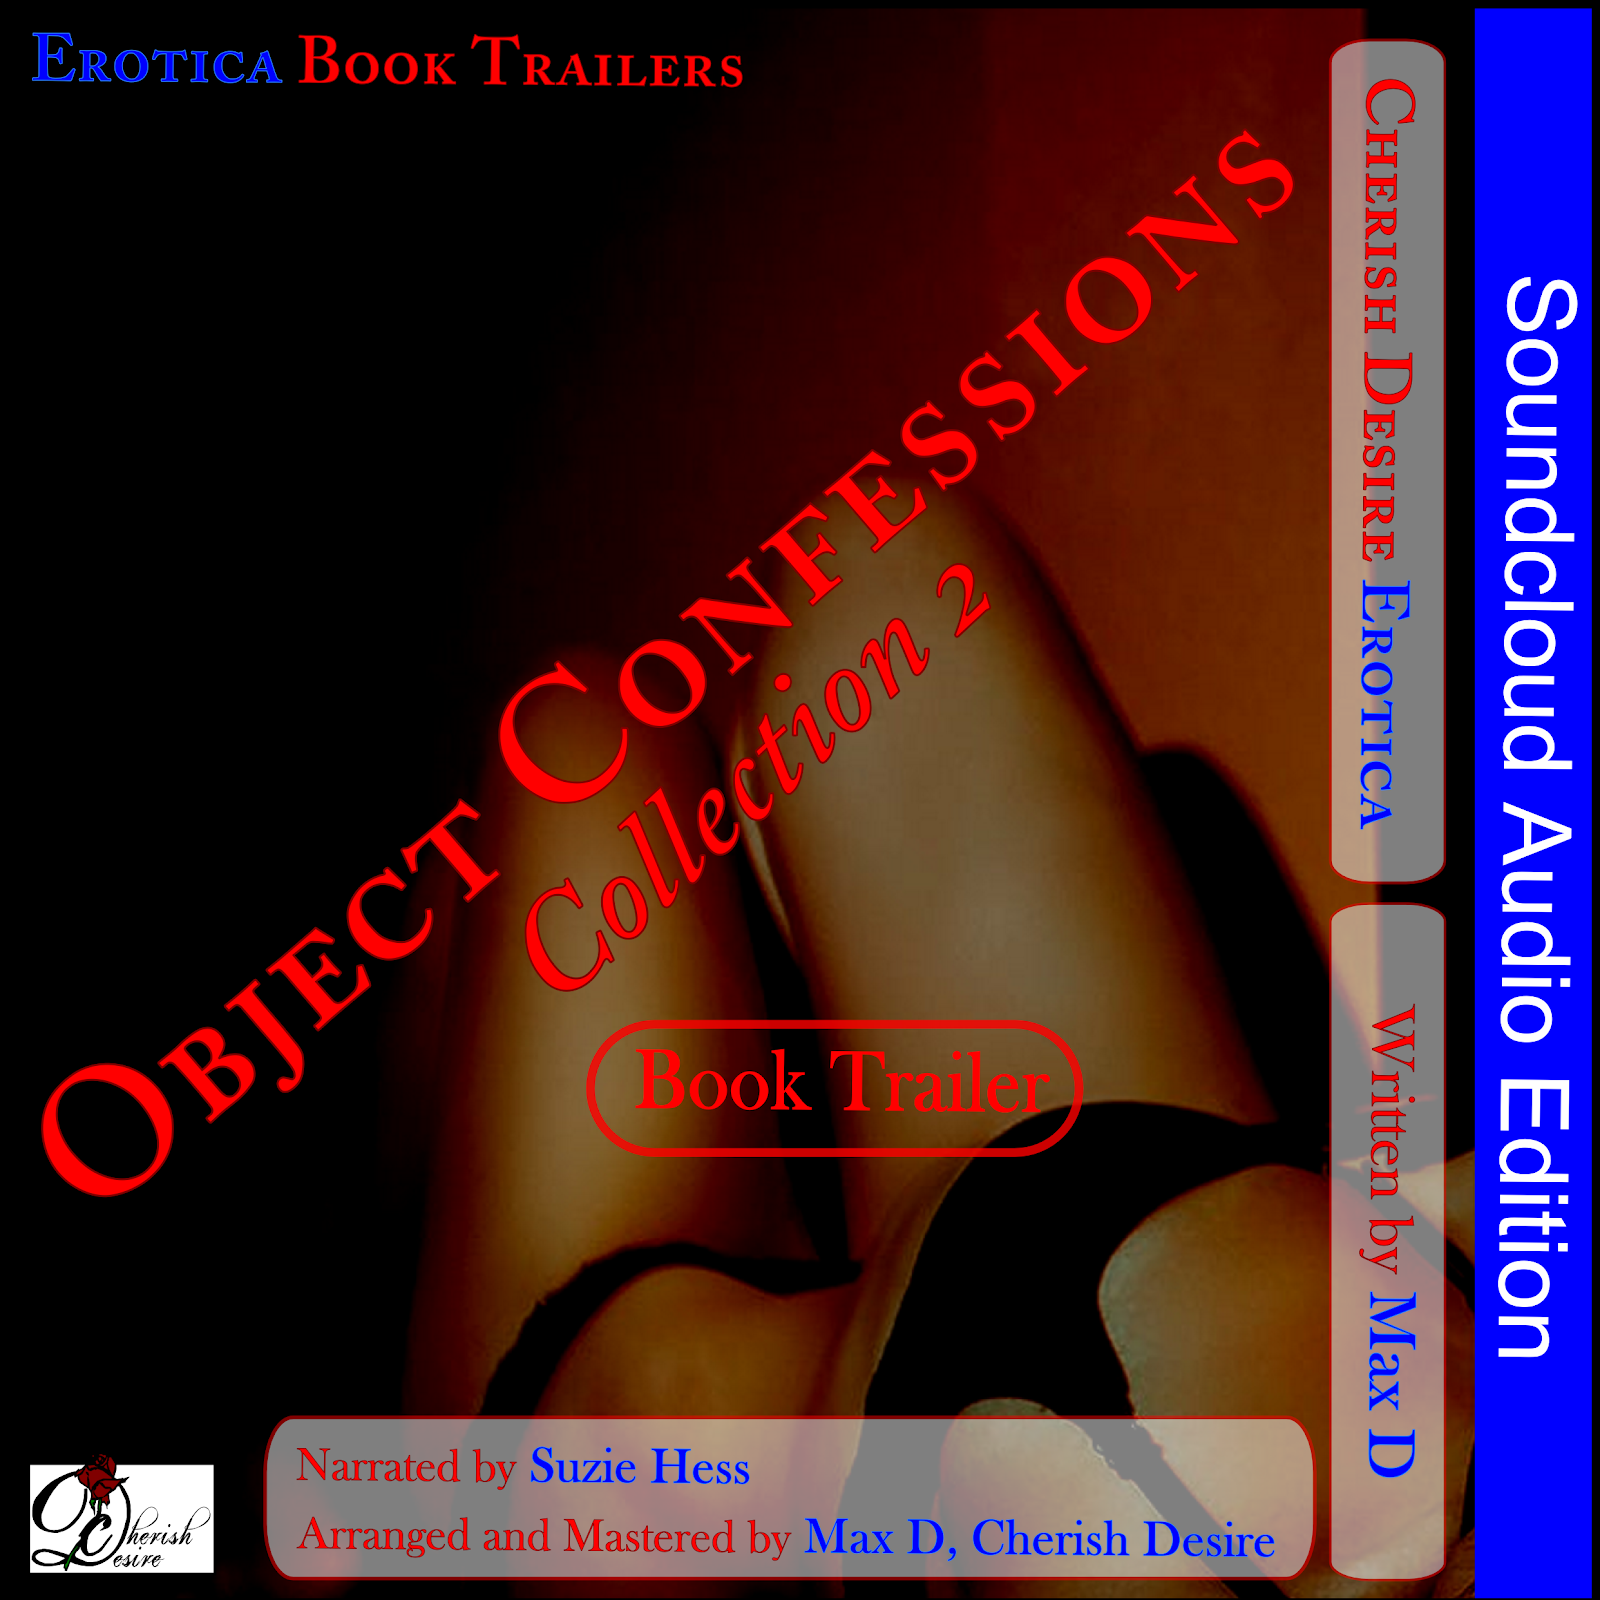 Cherish Desire Singles: Object Confessions Collection 2, Soundcloud Audio Book Trailer, Max D, erotica